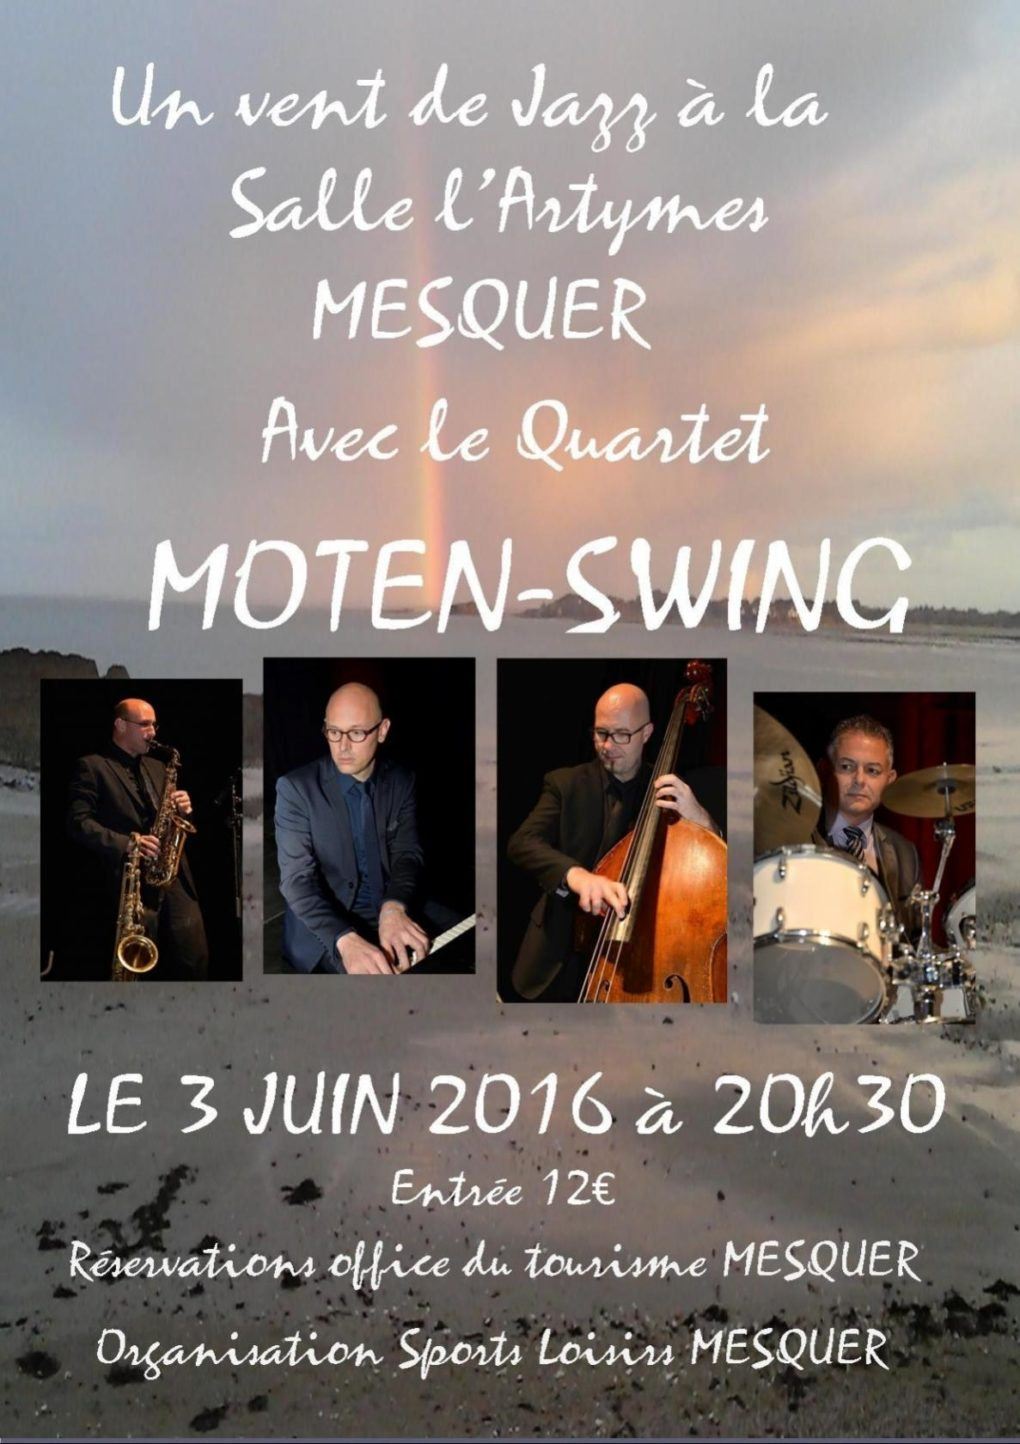 Moten swing Mesquer